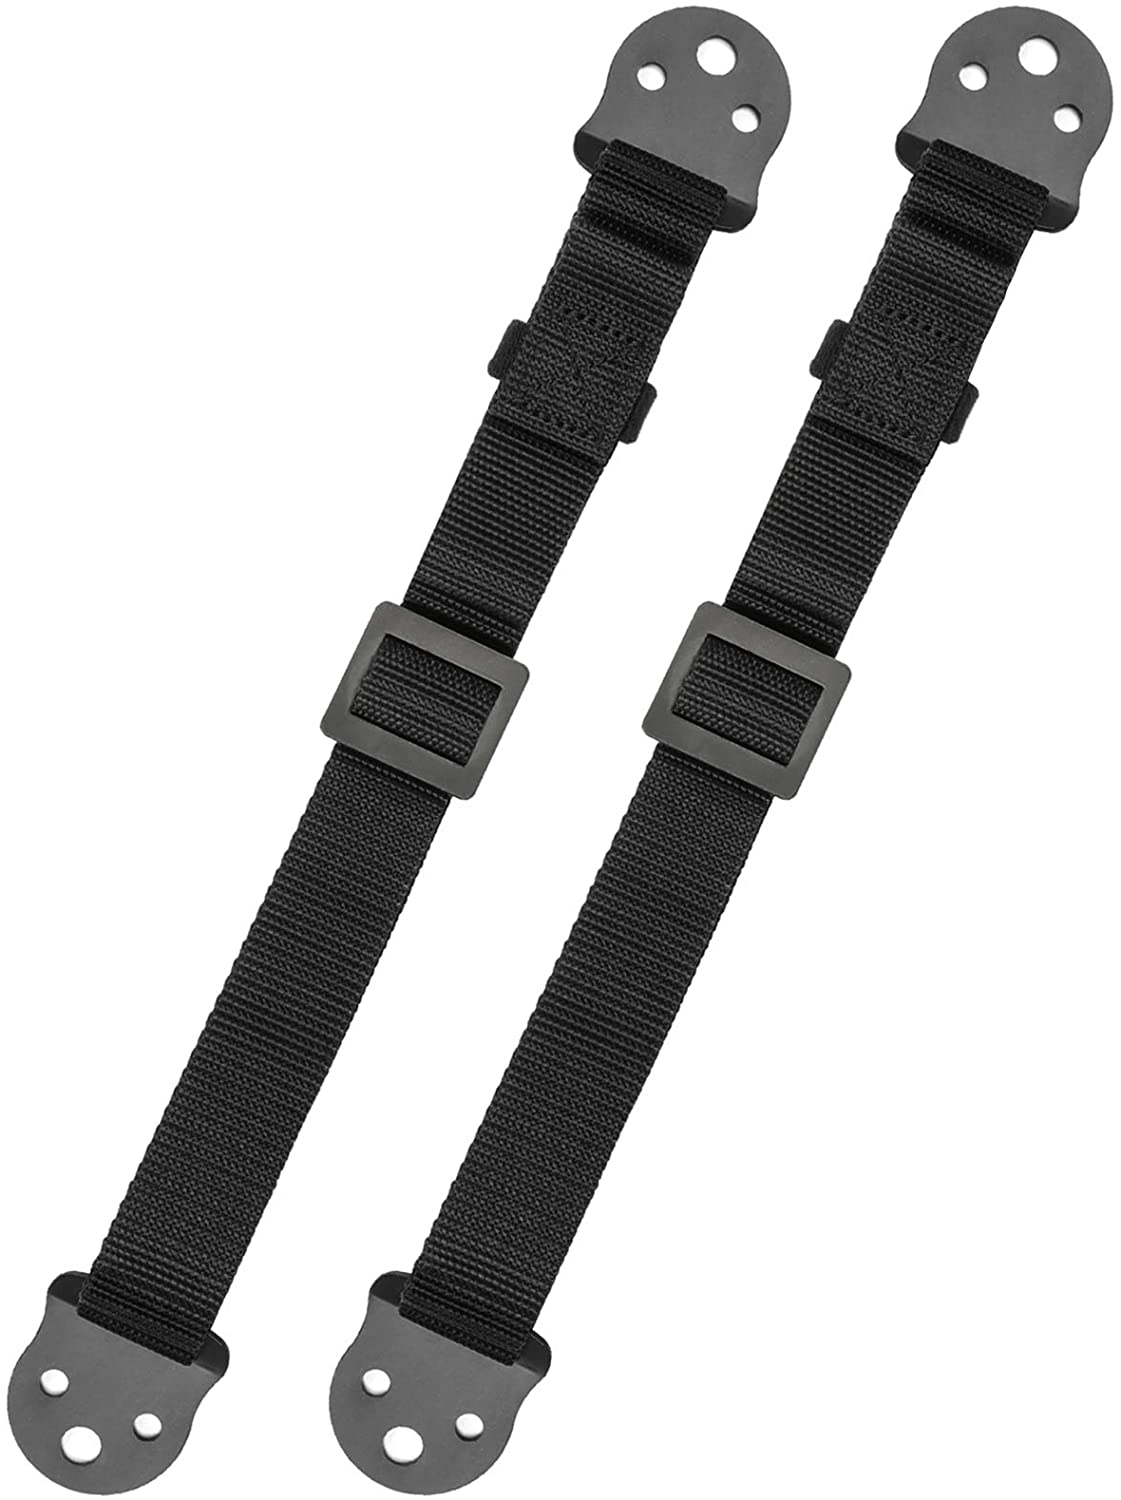 PERLESMITH TV Anti-tip Straps for TV, Screen and Furniture - Heavy Duty Dual TV Safety Straps with Metal Plate for Child Protection-Adjustable Earthquake Resistant Straps Secure Safety